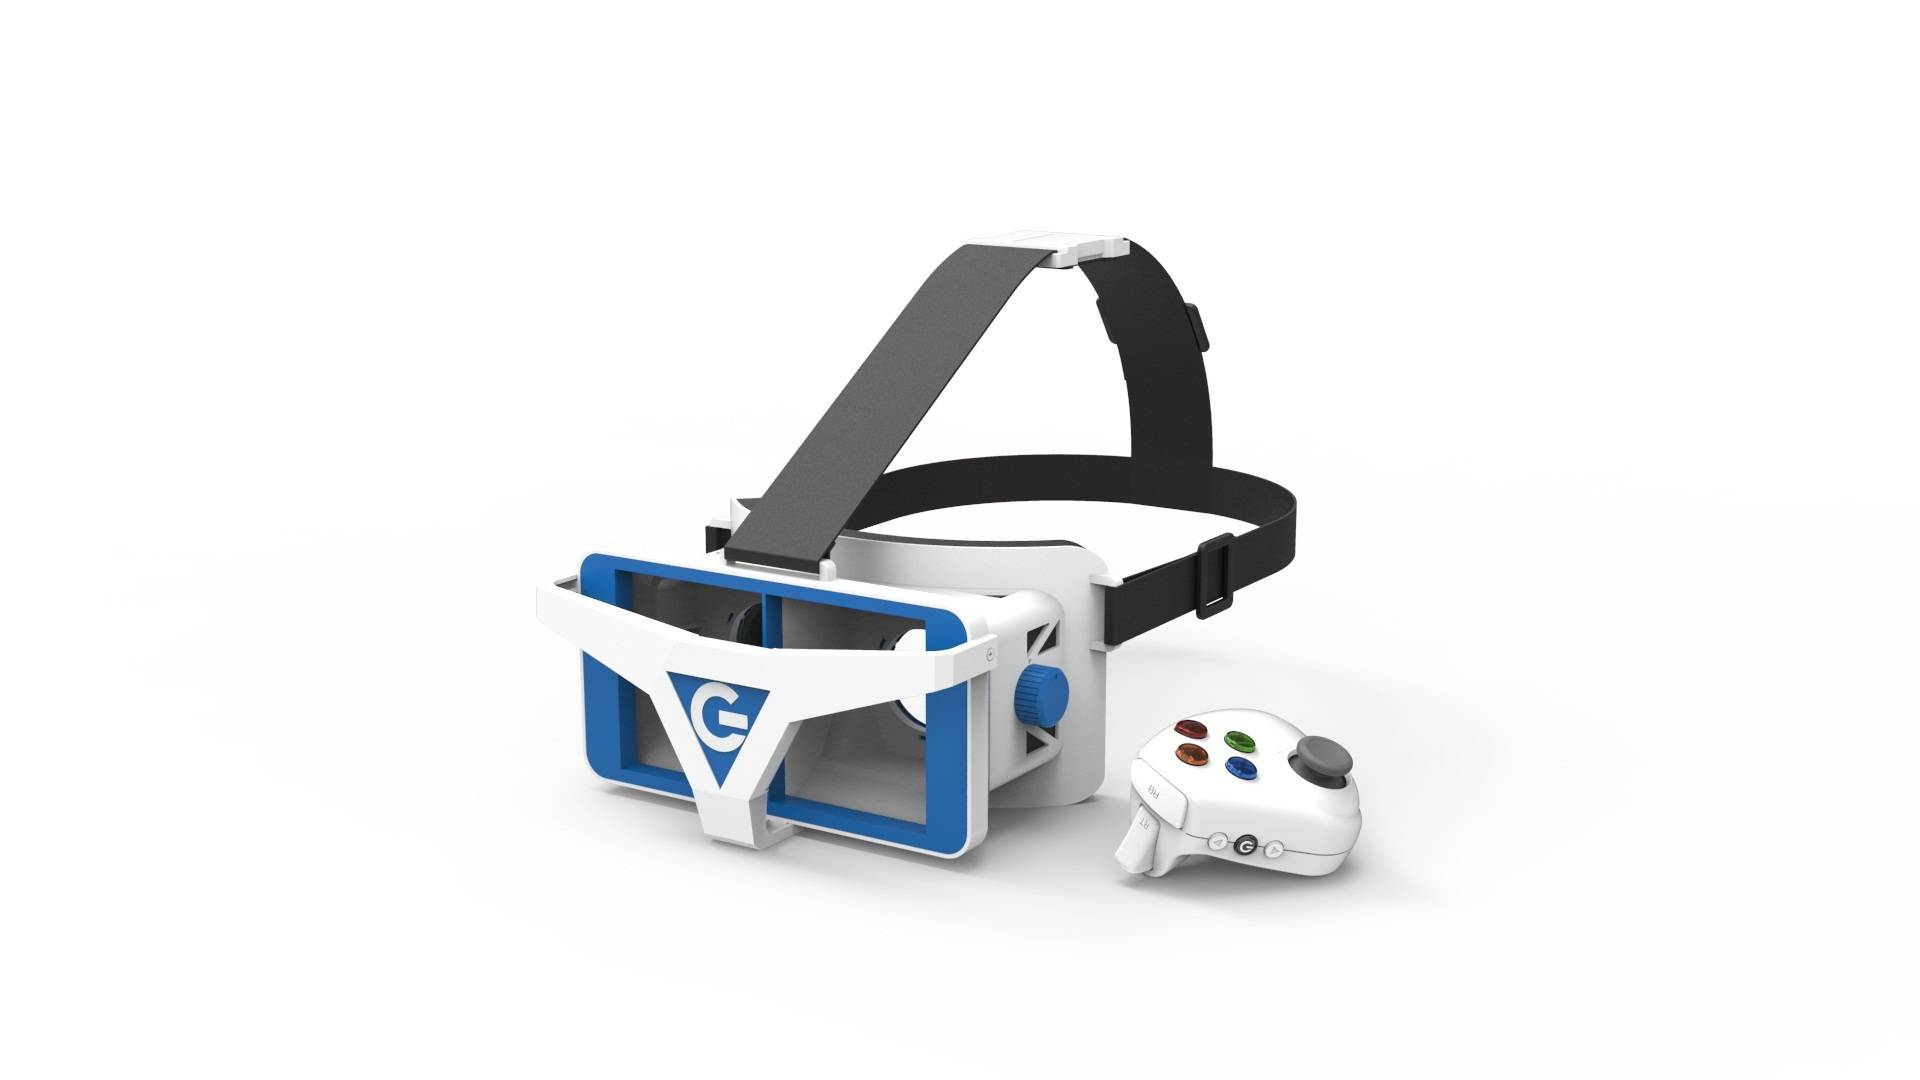 2016 the new vr glasses  with immersive technology for vr entertainment